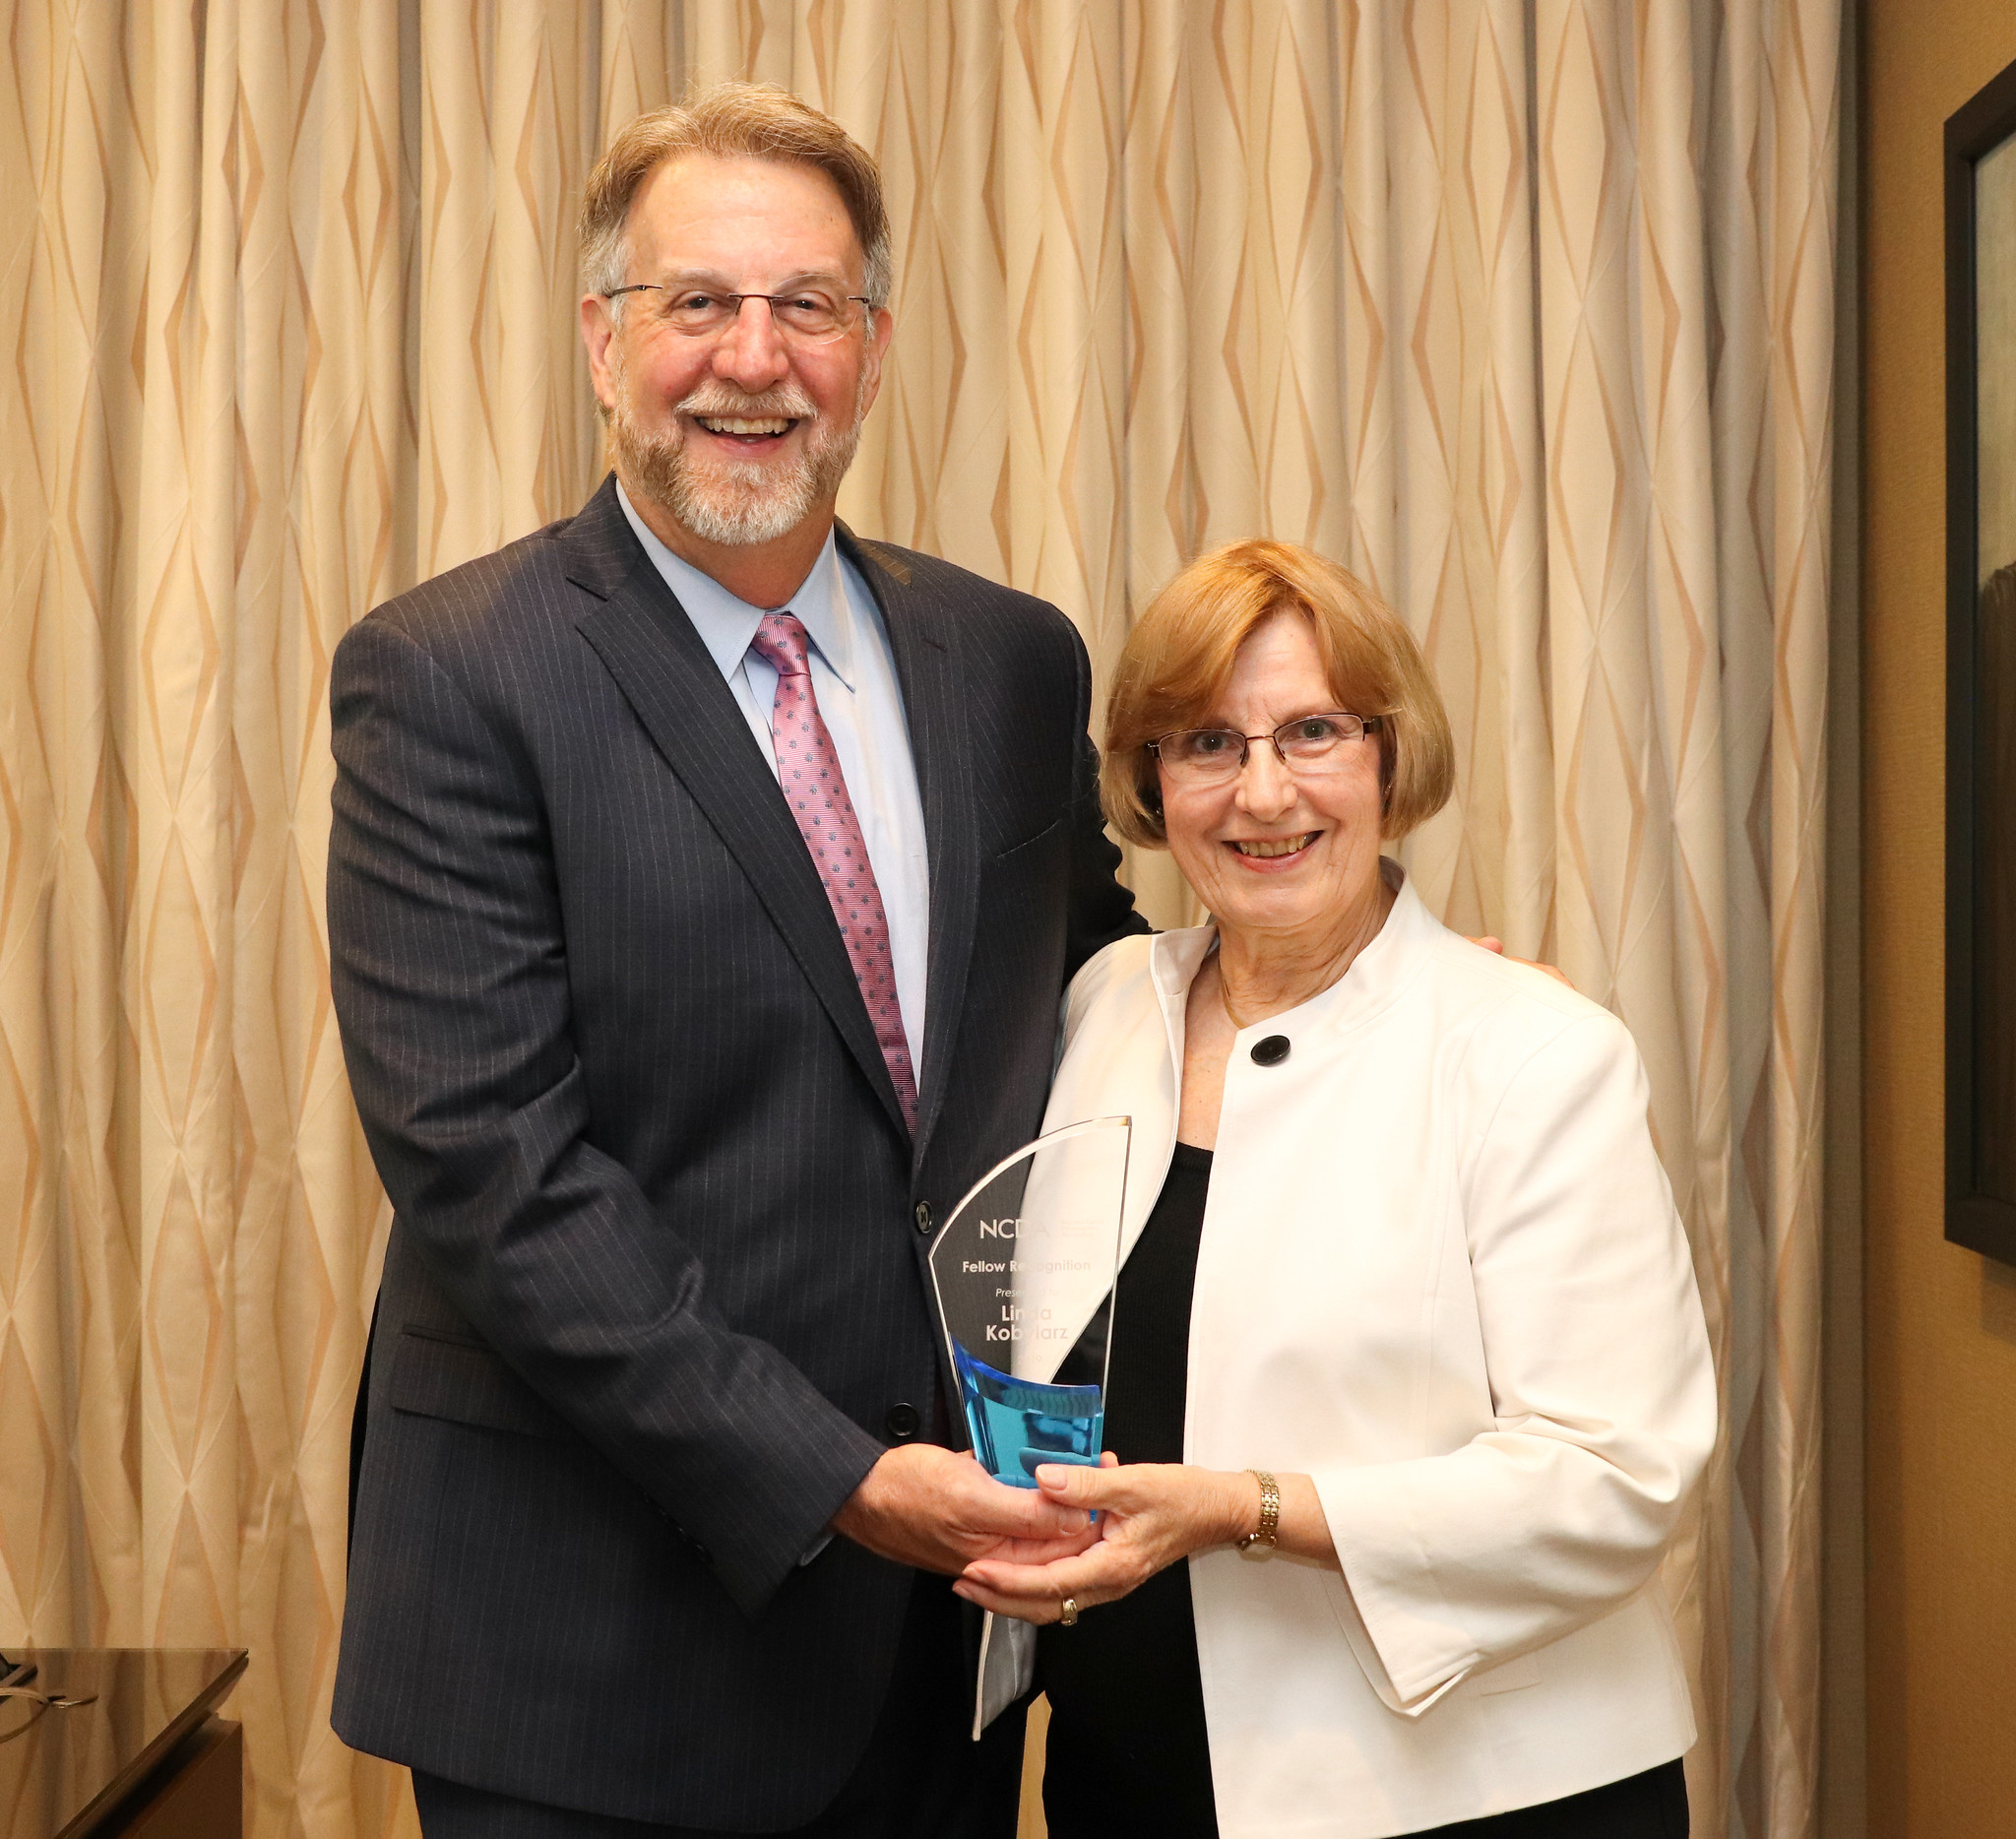 Linda Kobylarz Recognized with Fellows Award from the National Career Development Association